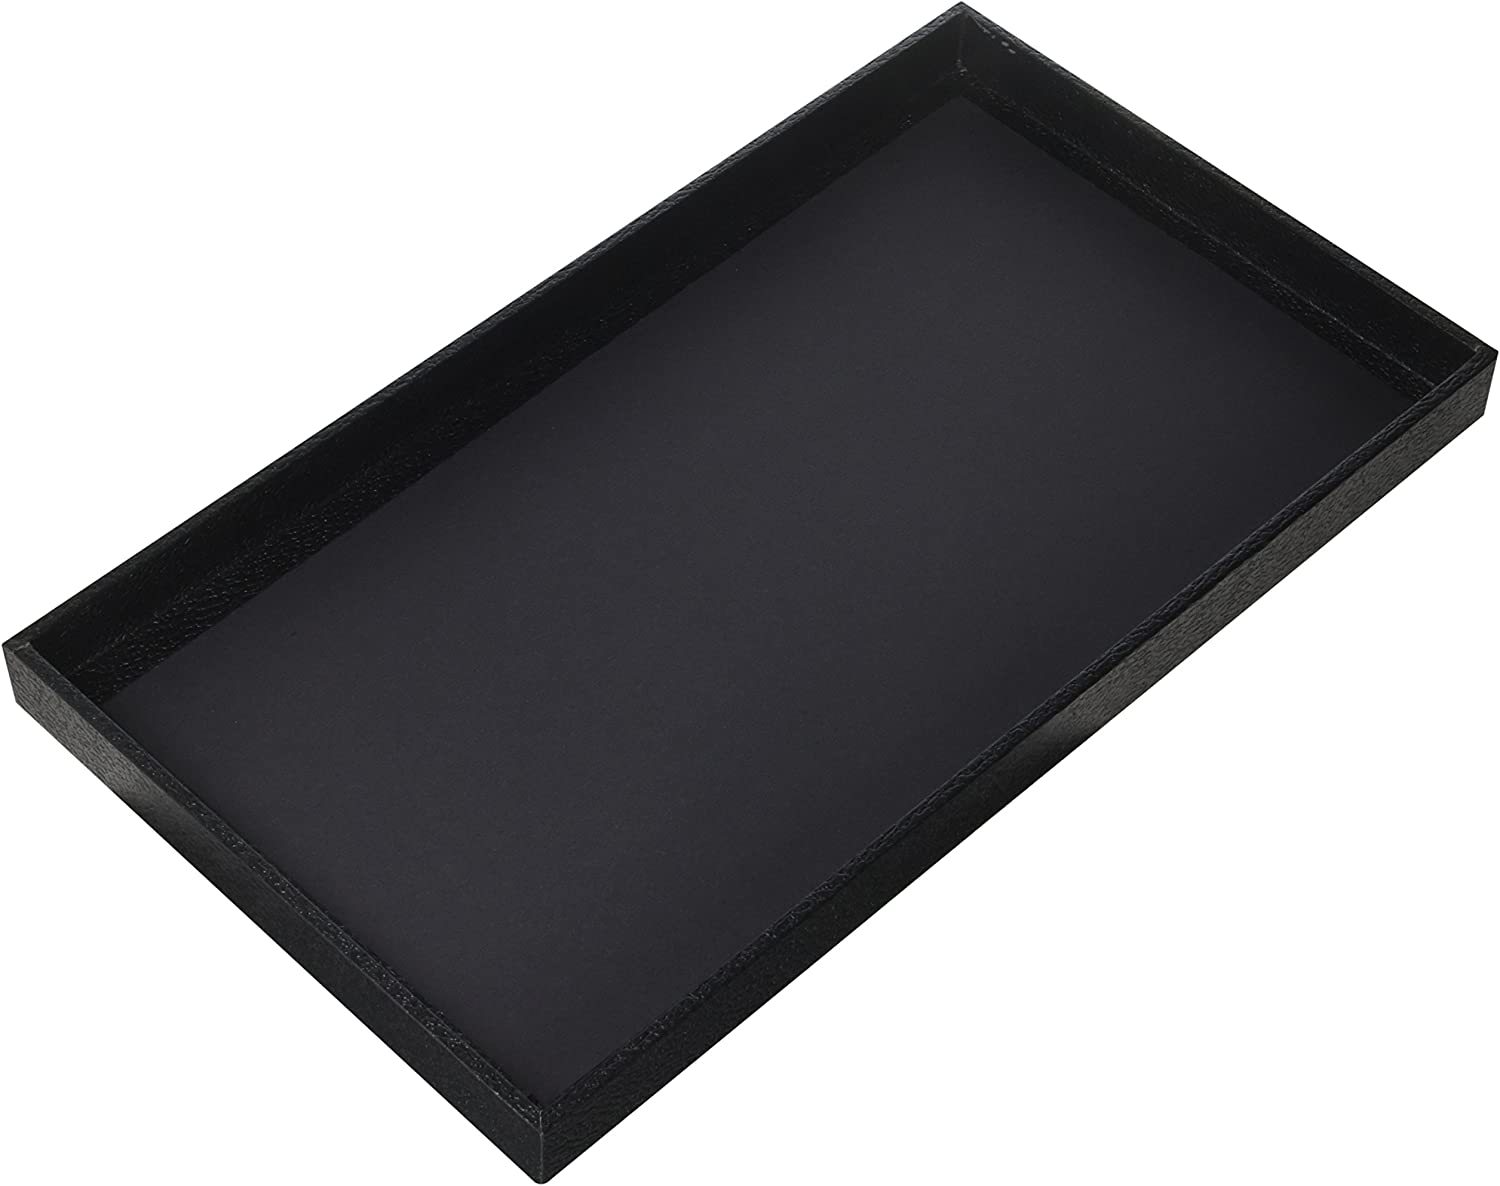 """Regal Pak 3-Piece 1 -Inch Deep Black Full Size Plastic Stackable Jewelry Tray 14 3/4"""" X 8 1/4"""" X 1""""H"""